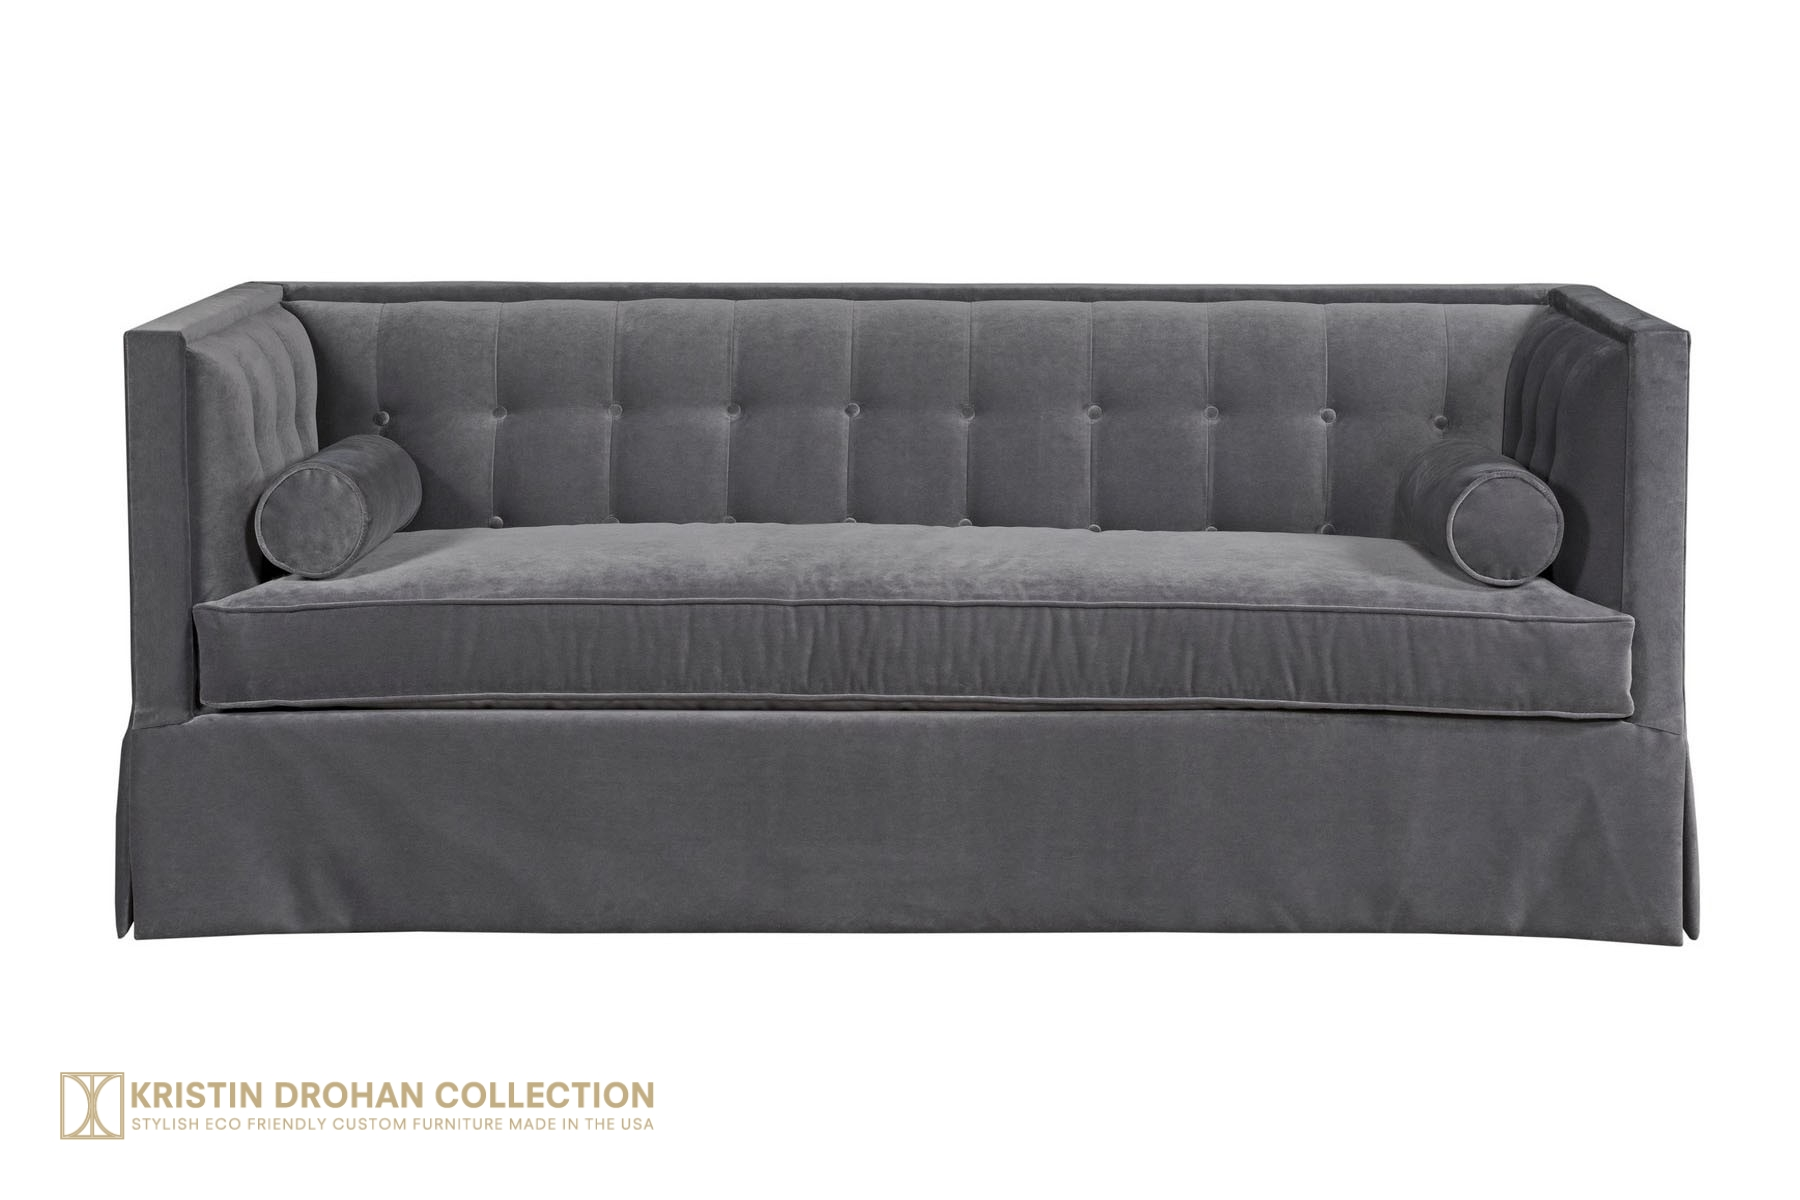 Christopher Sofa Tufted Tuxedo Sofa from The Kristin Drohan